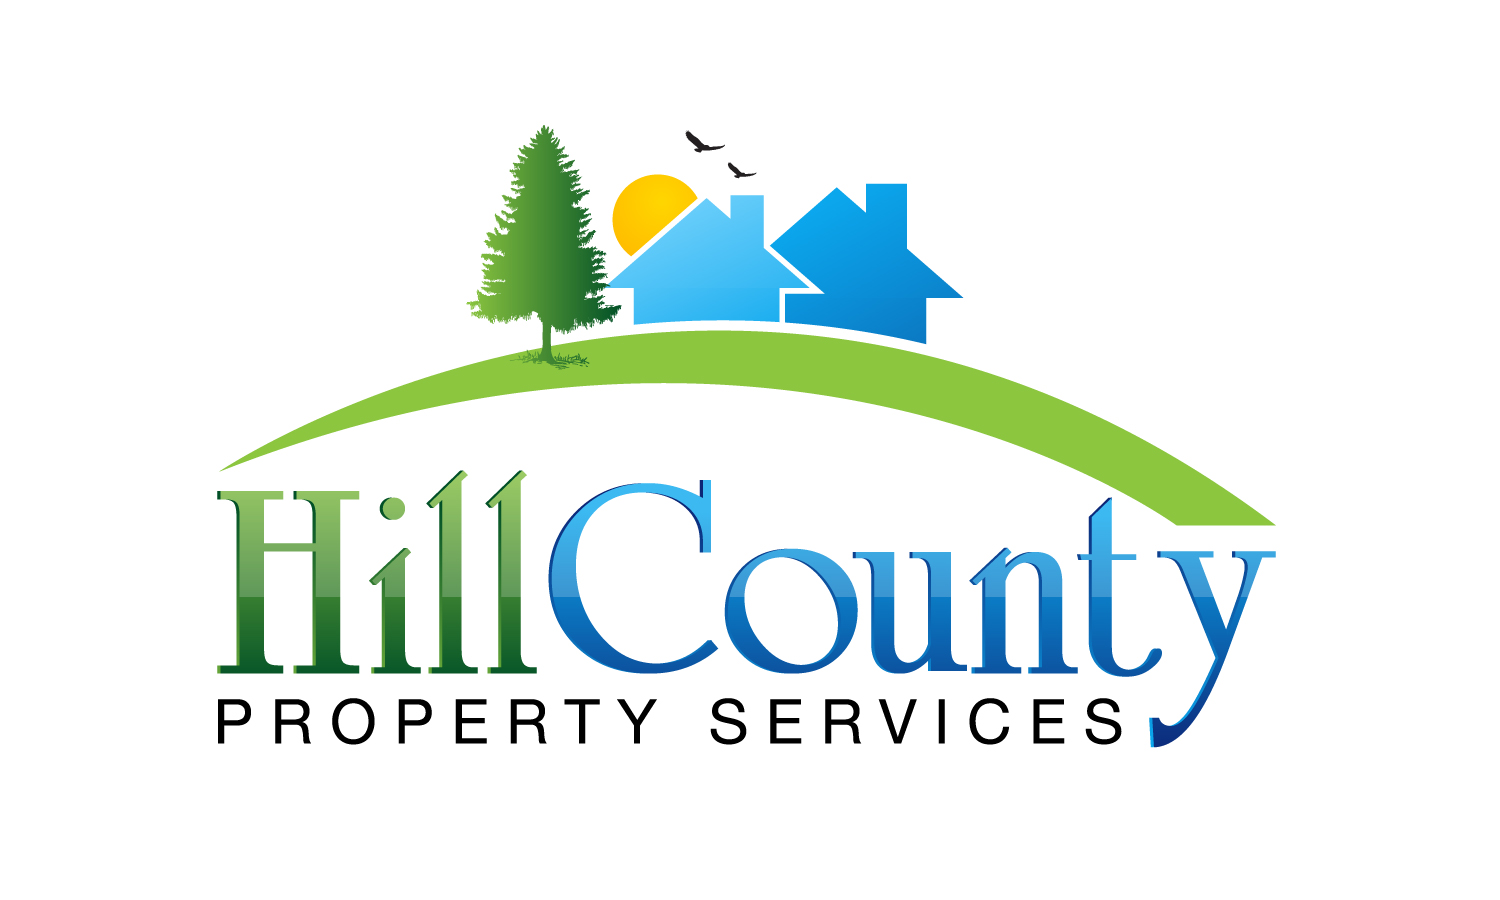 Hill County Property Services